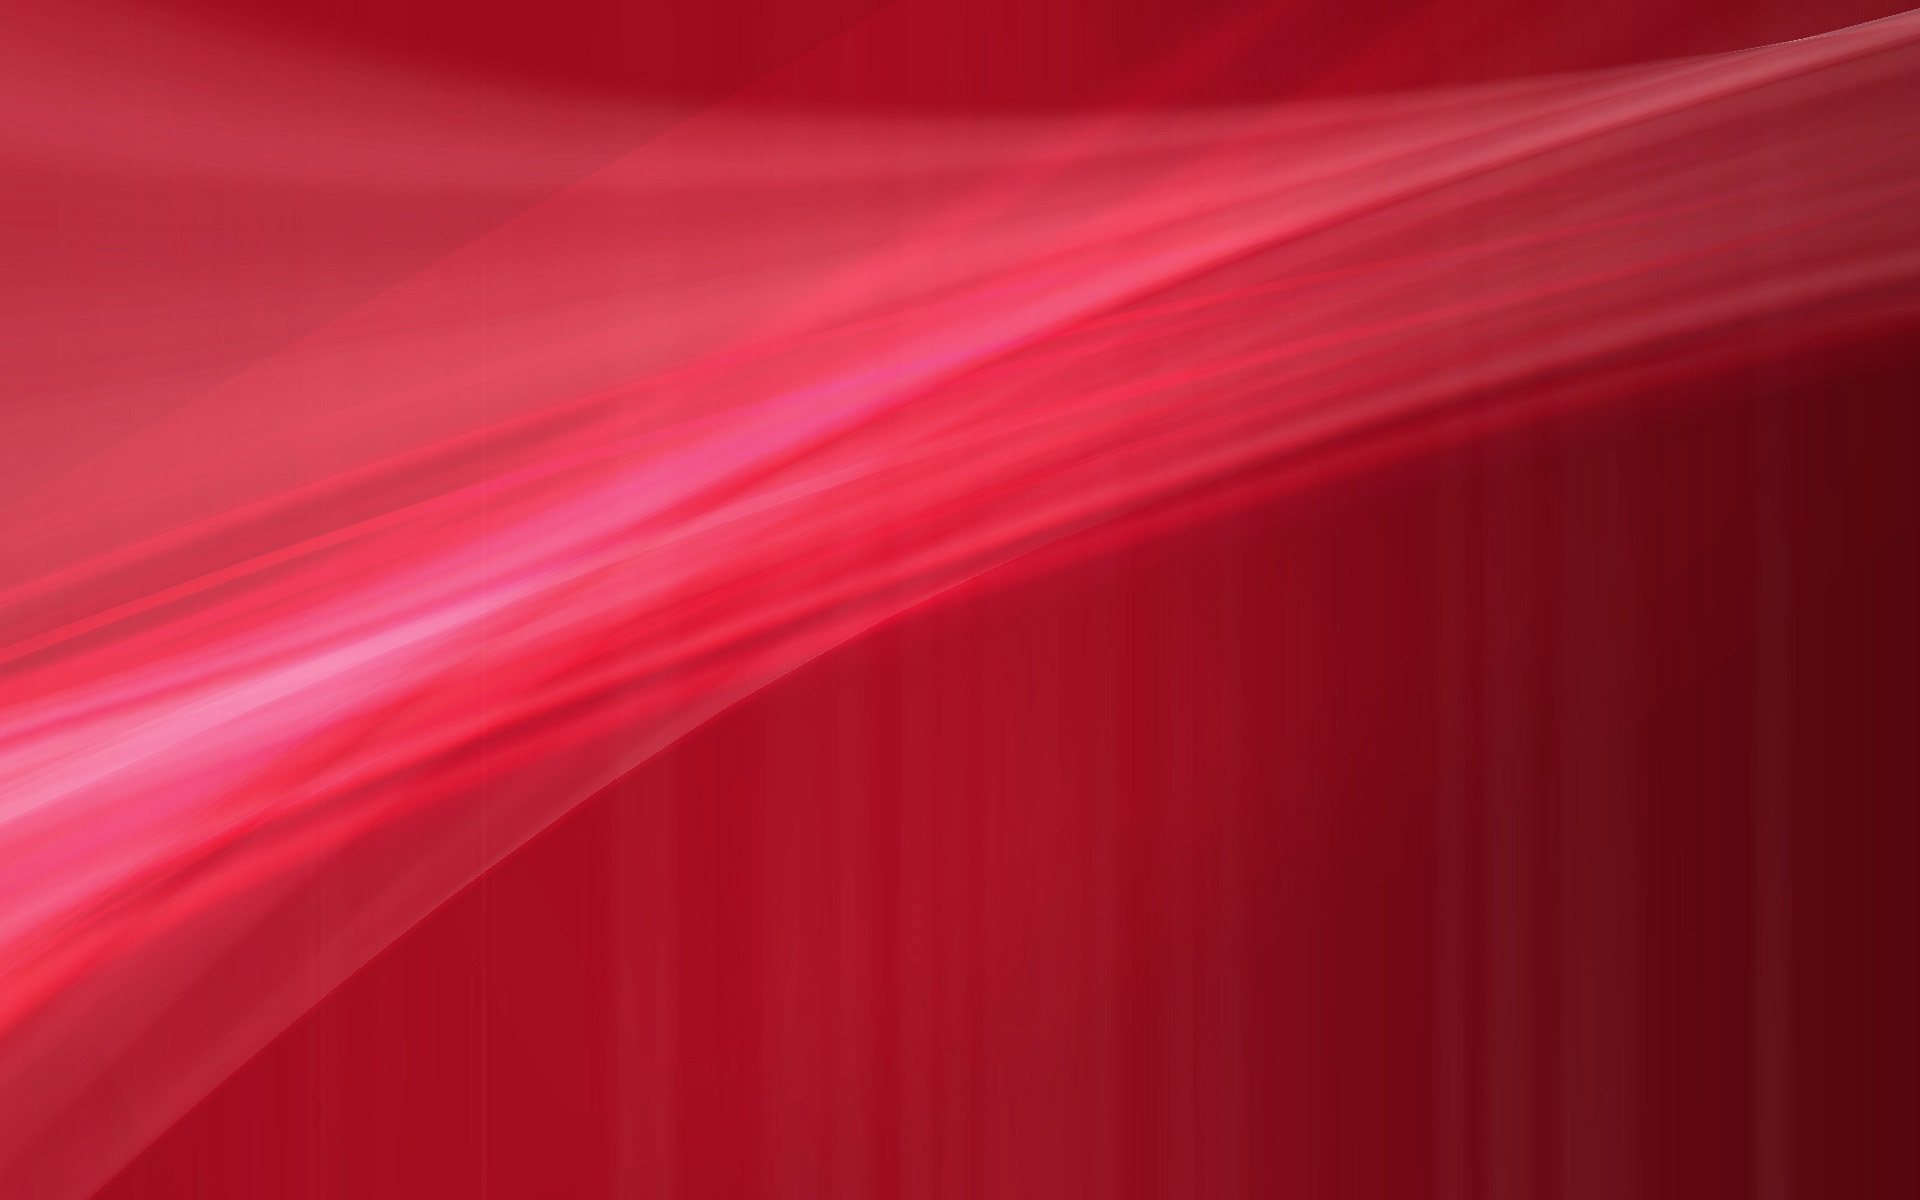 red color background hd - photo #28